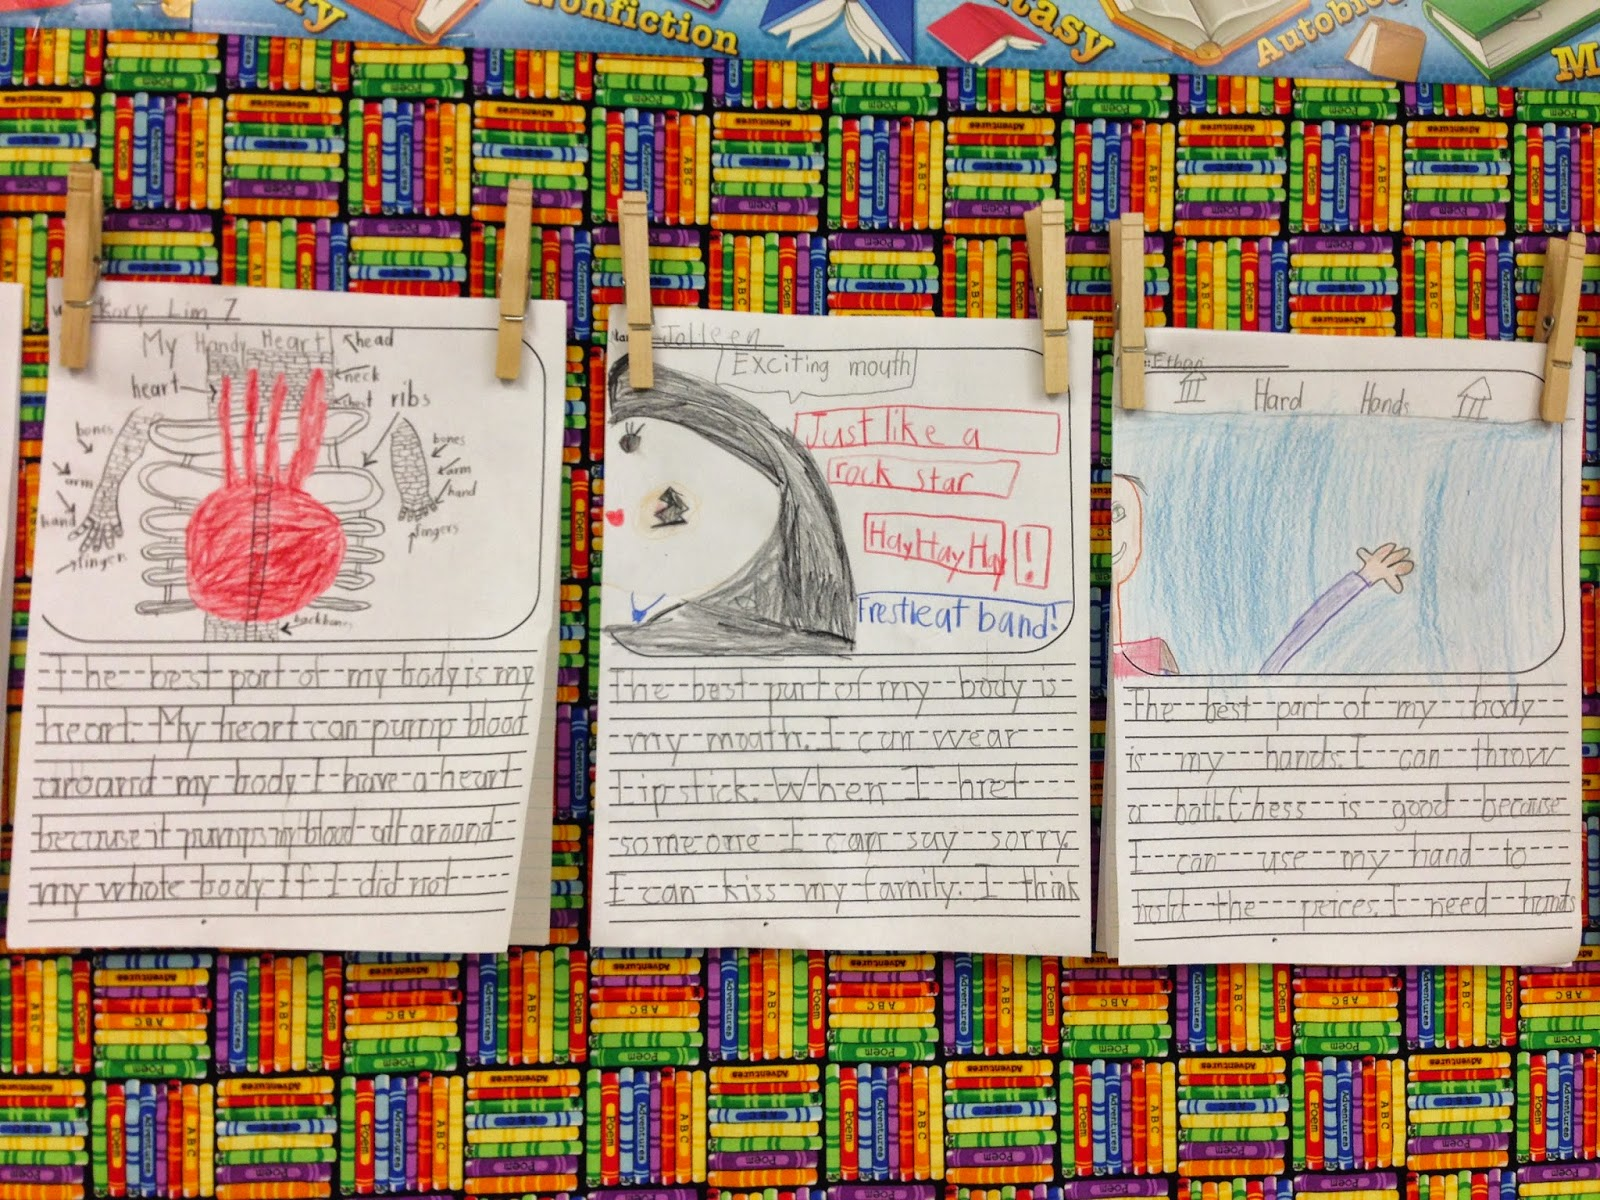 We wrote about the best part of our body. Opinions included eyes, ears ...